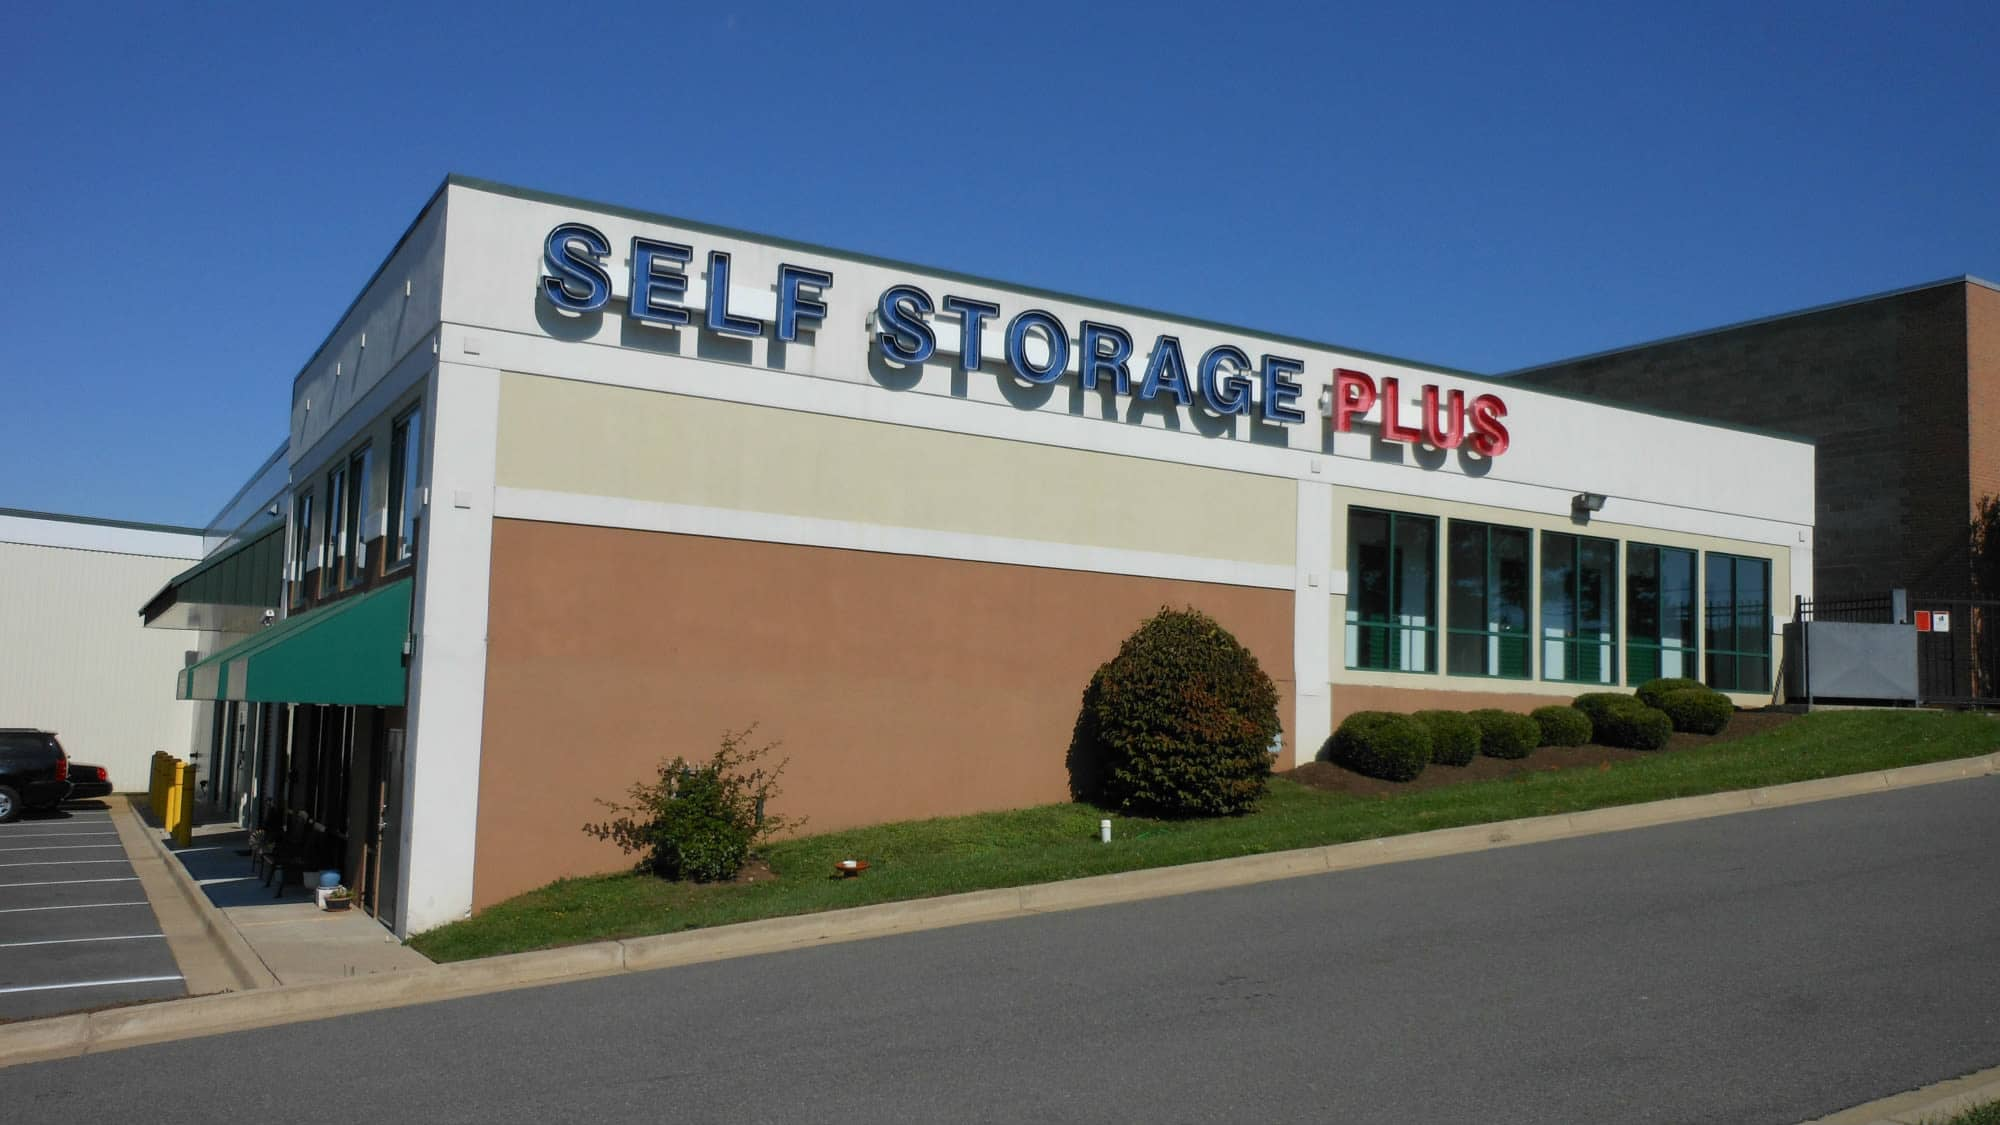 Sign on the sign of the Self Storage Plus building in Rockville, MD